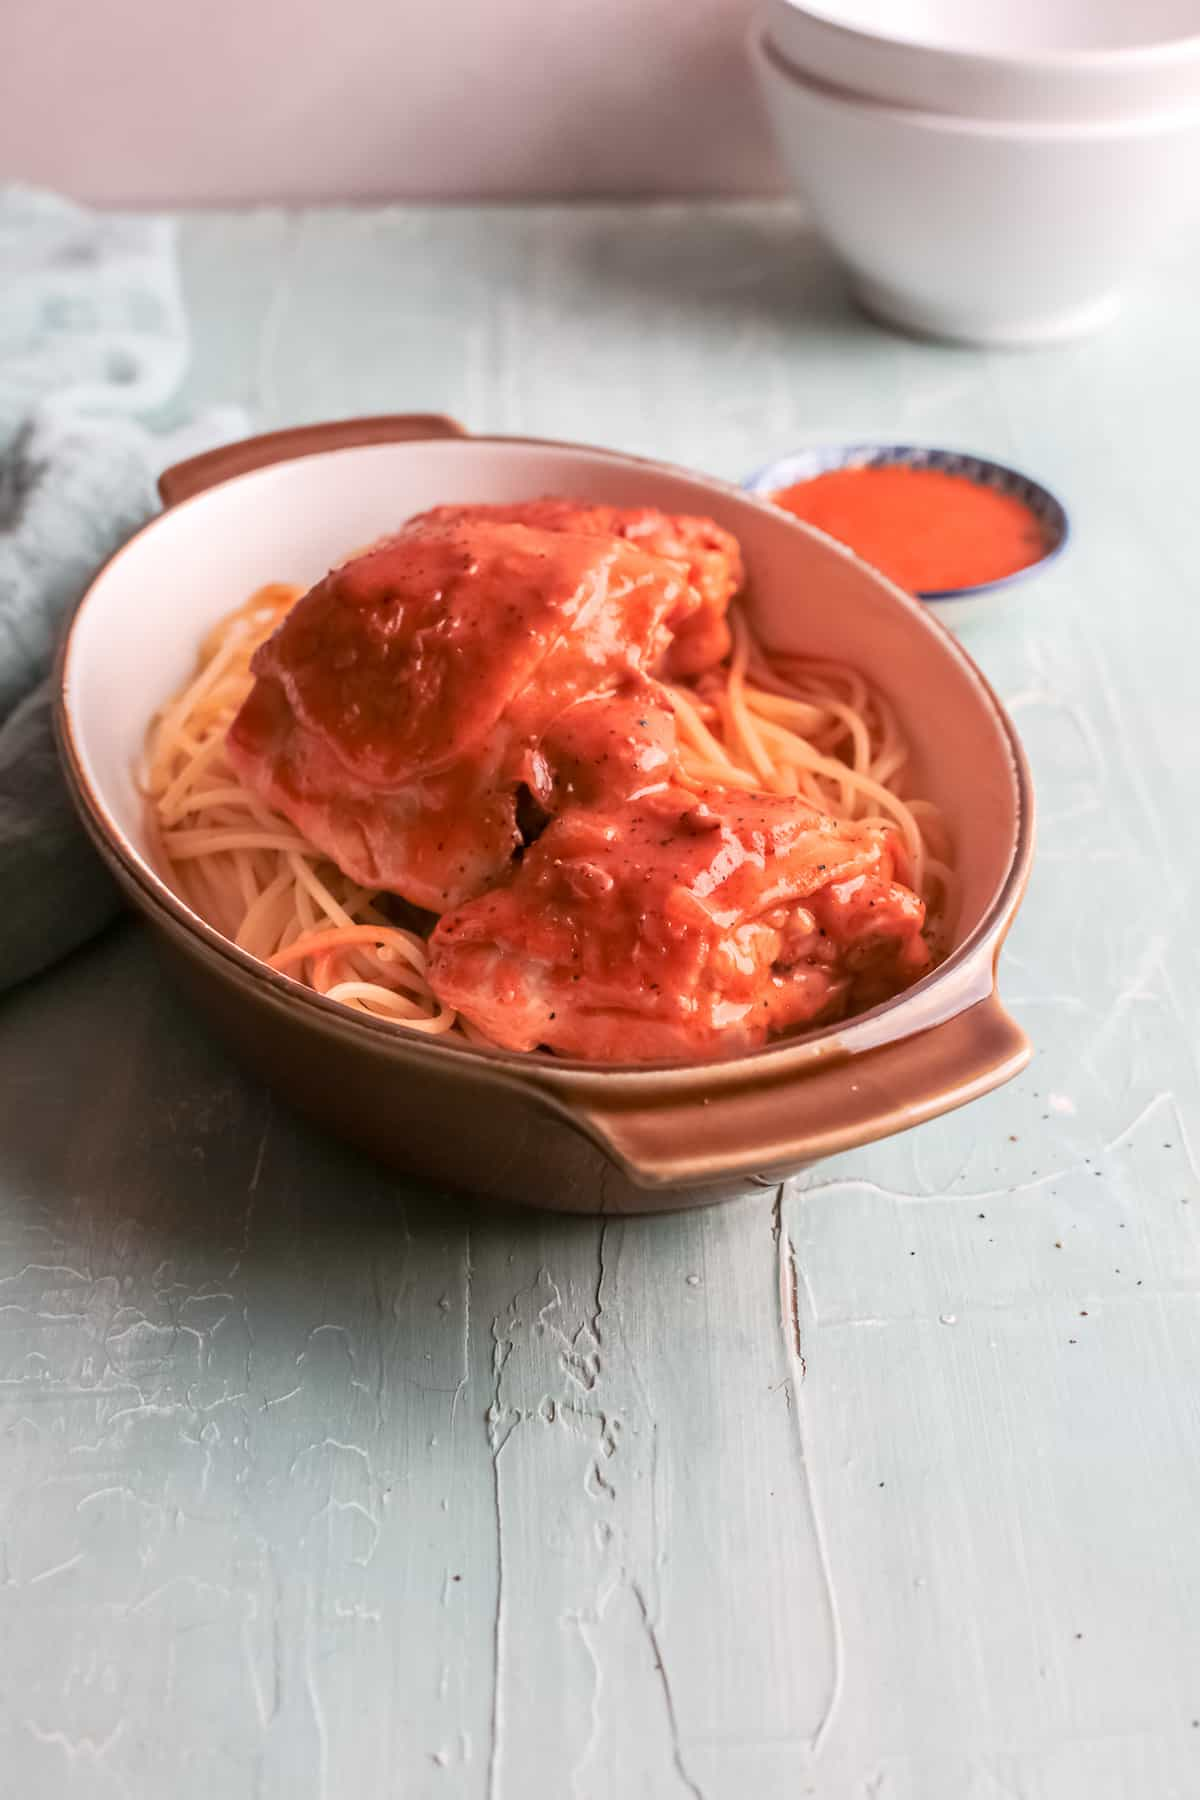 the instant pot chicken paprikash ready to be served